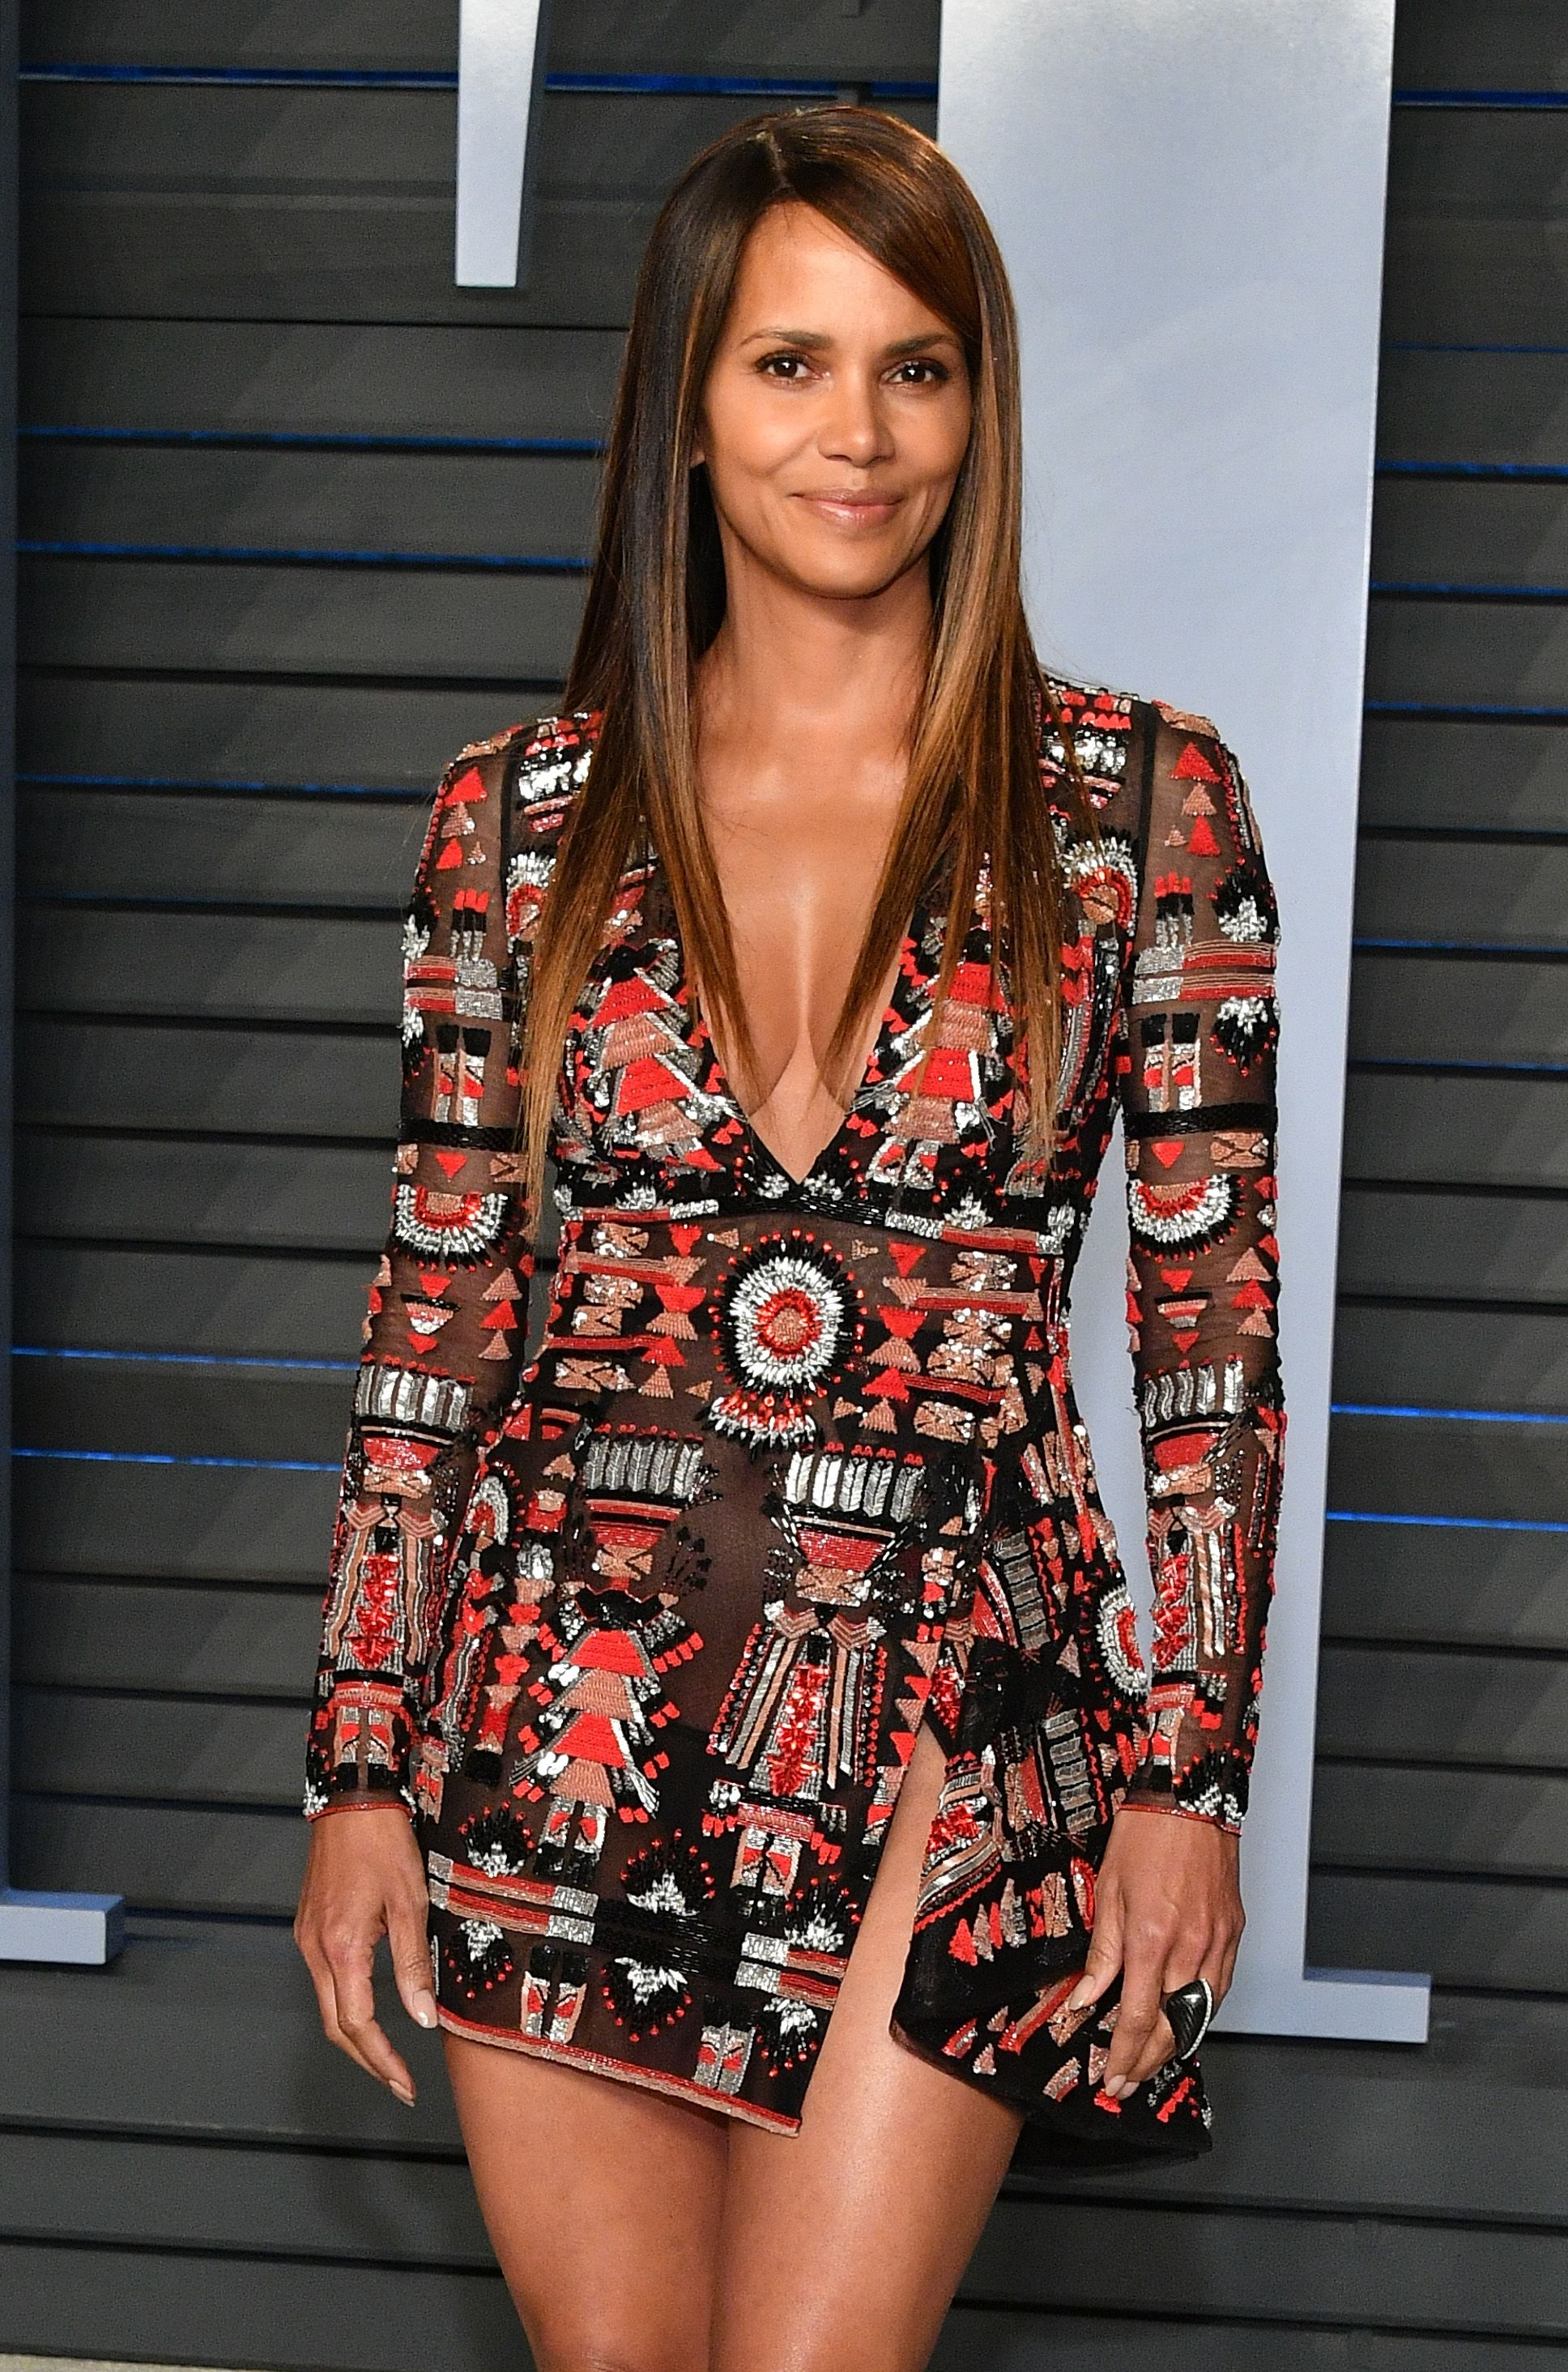 Halle Berry at the Vanity Fair Oscar Party hosted by Radhika Jones on March 4, 2018, in Beverly Hills, California | Photo: Dia Dipasupil/Getty Images